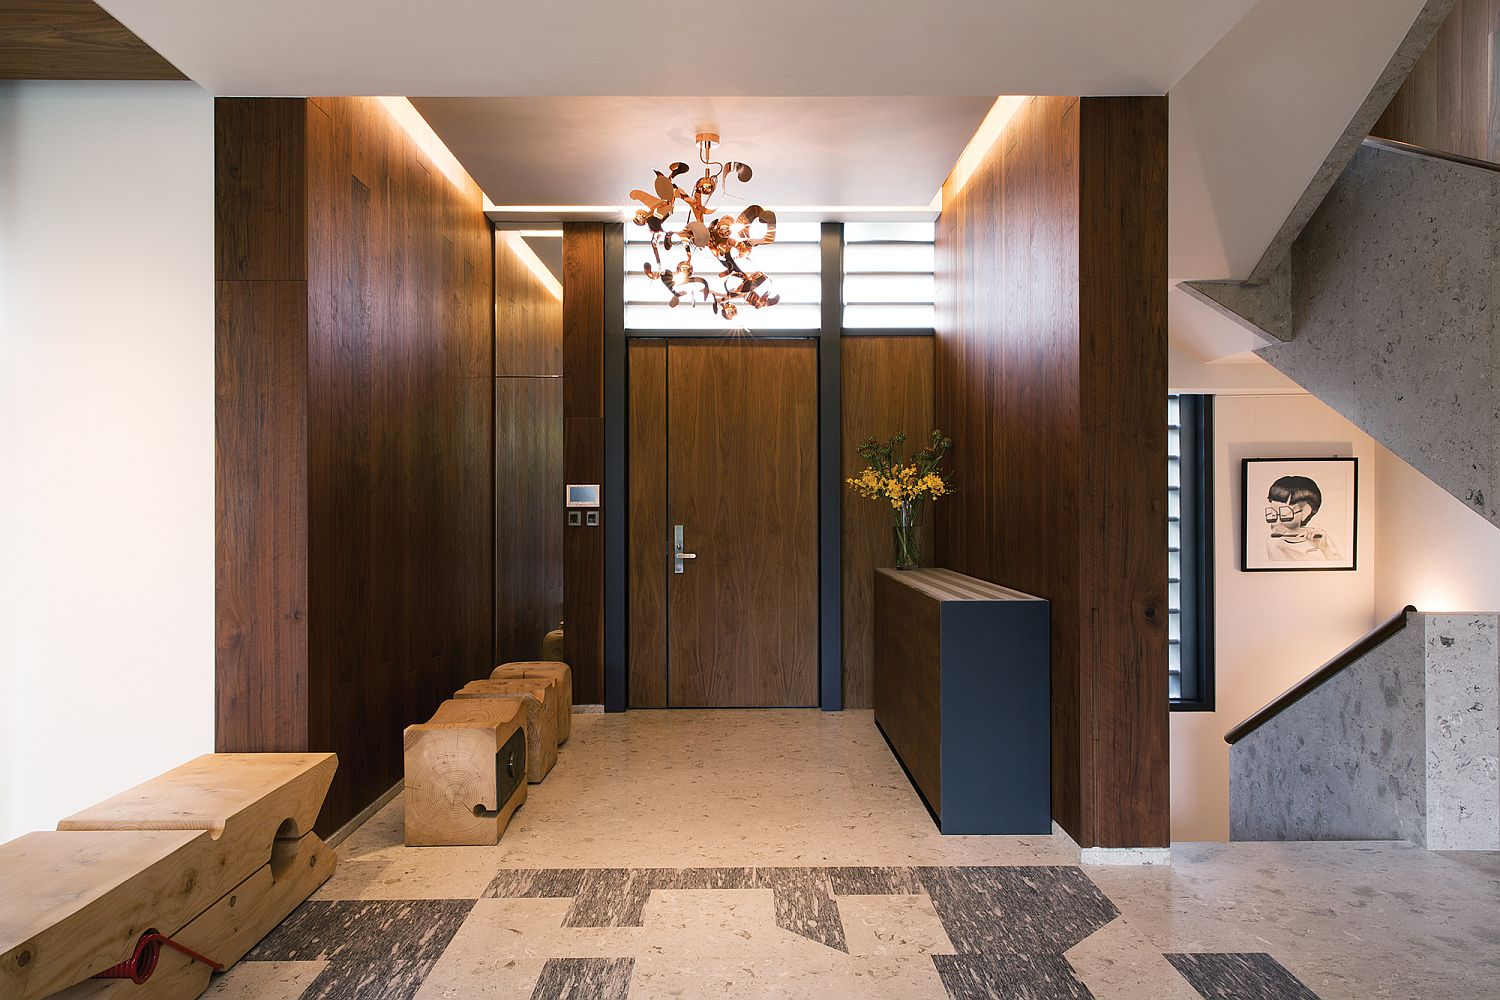 Entrance of the house with whimsical bespoke decor additions in wood